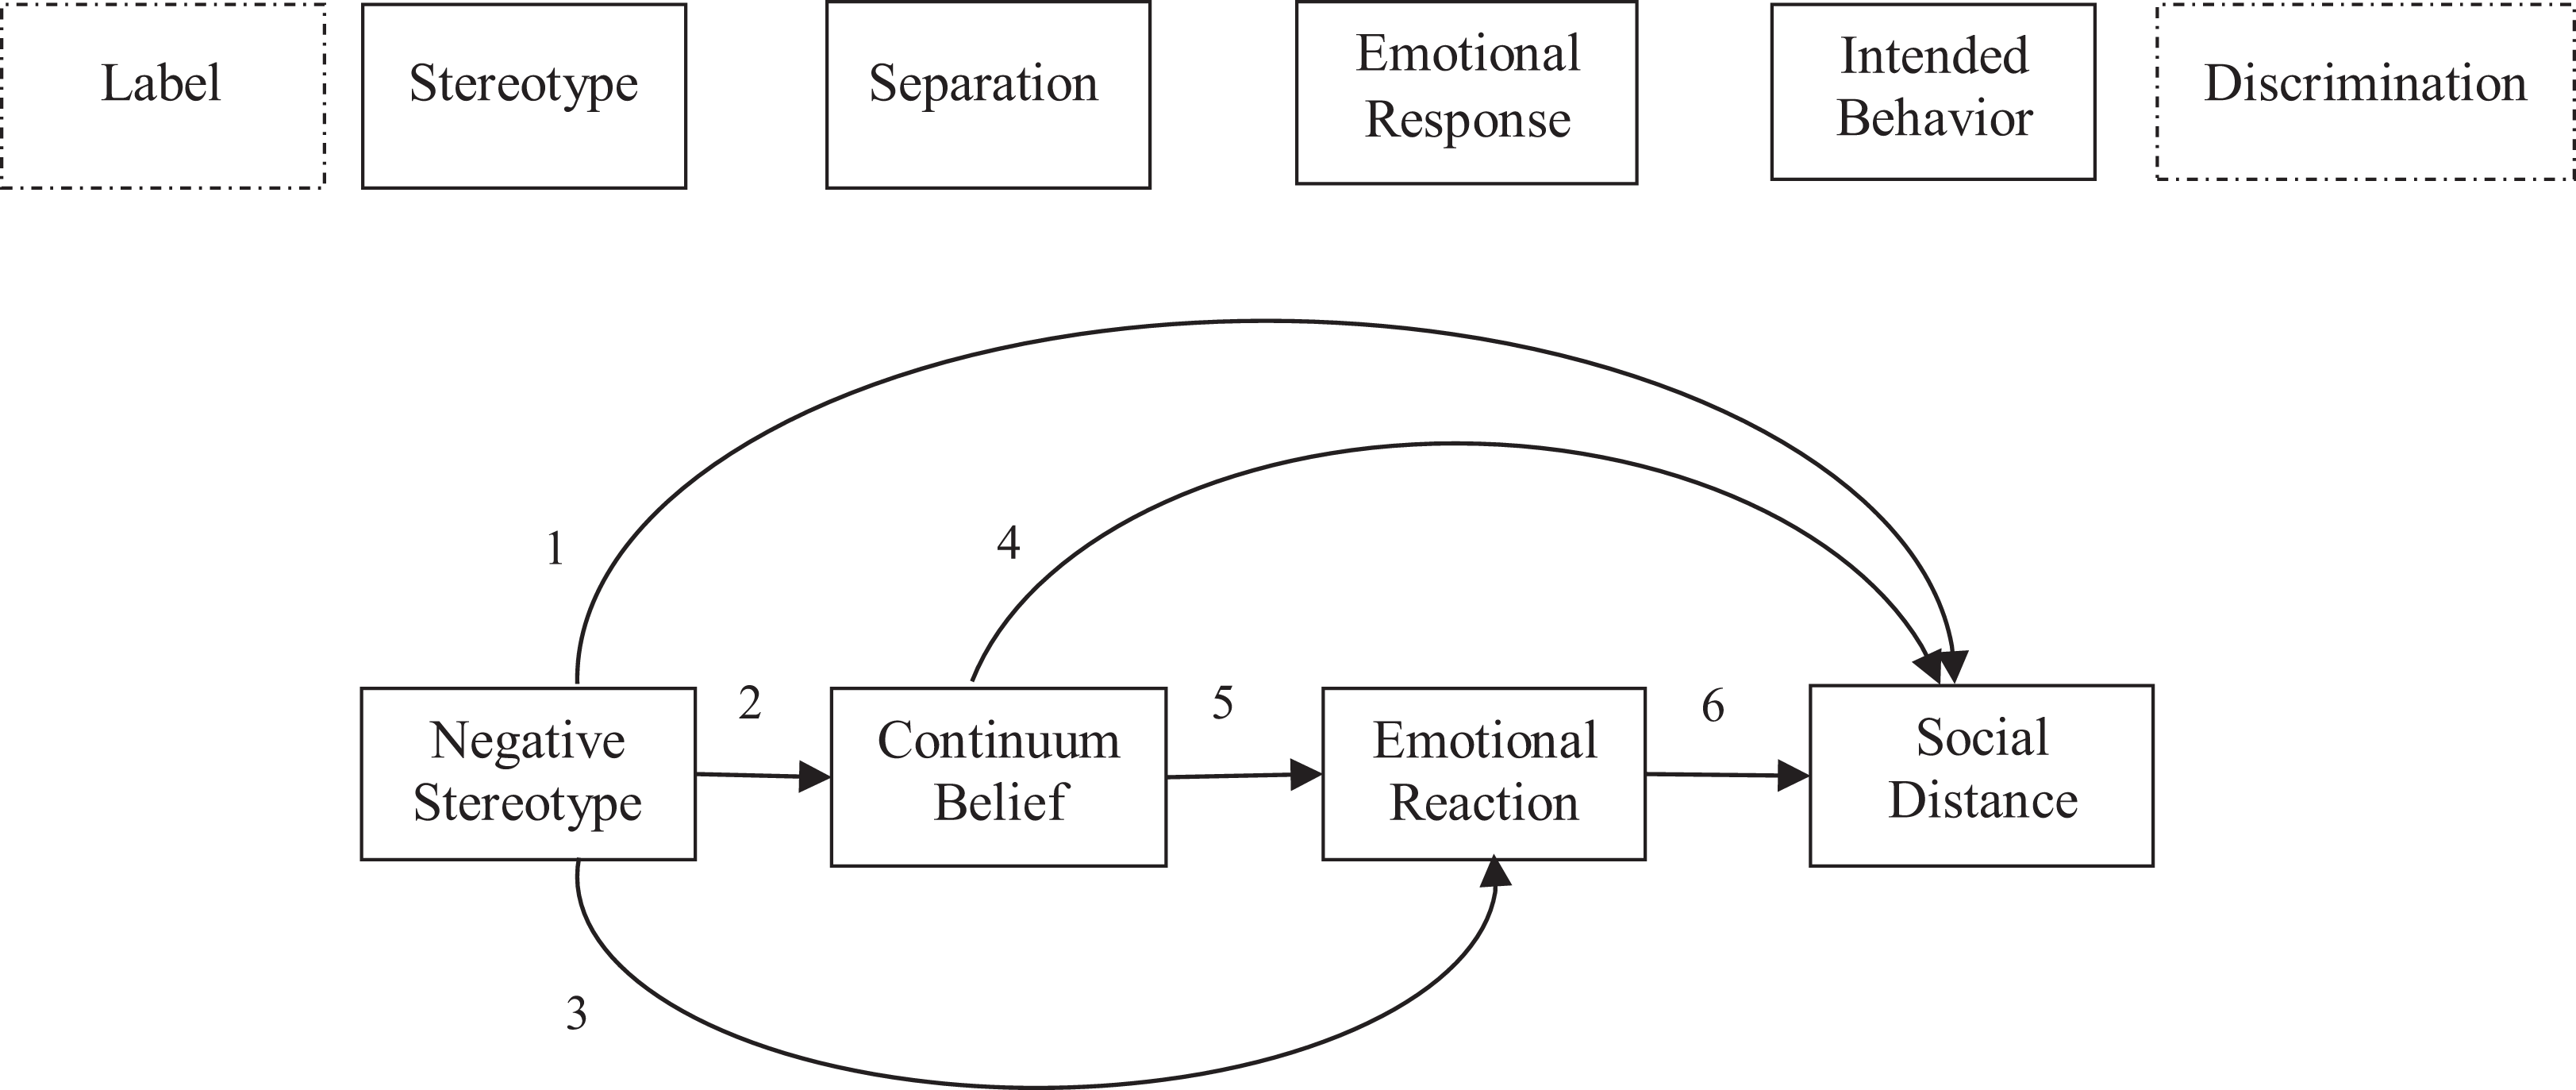 Continuum Beliefs In The Stigma Process Regarding Persons With